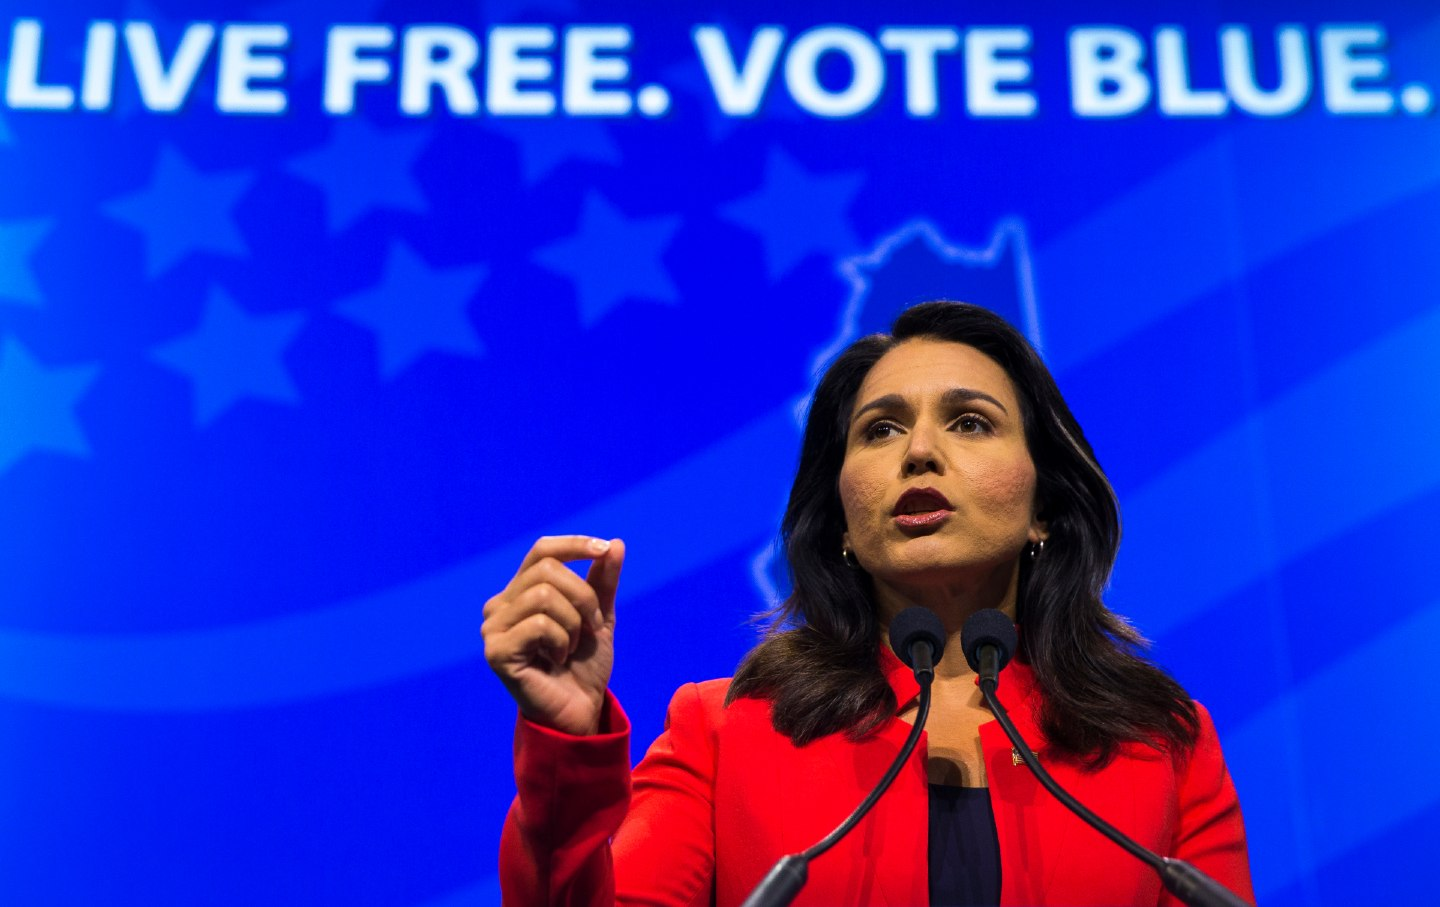 Tulsi Gabbard speaking